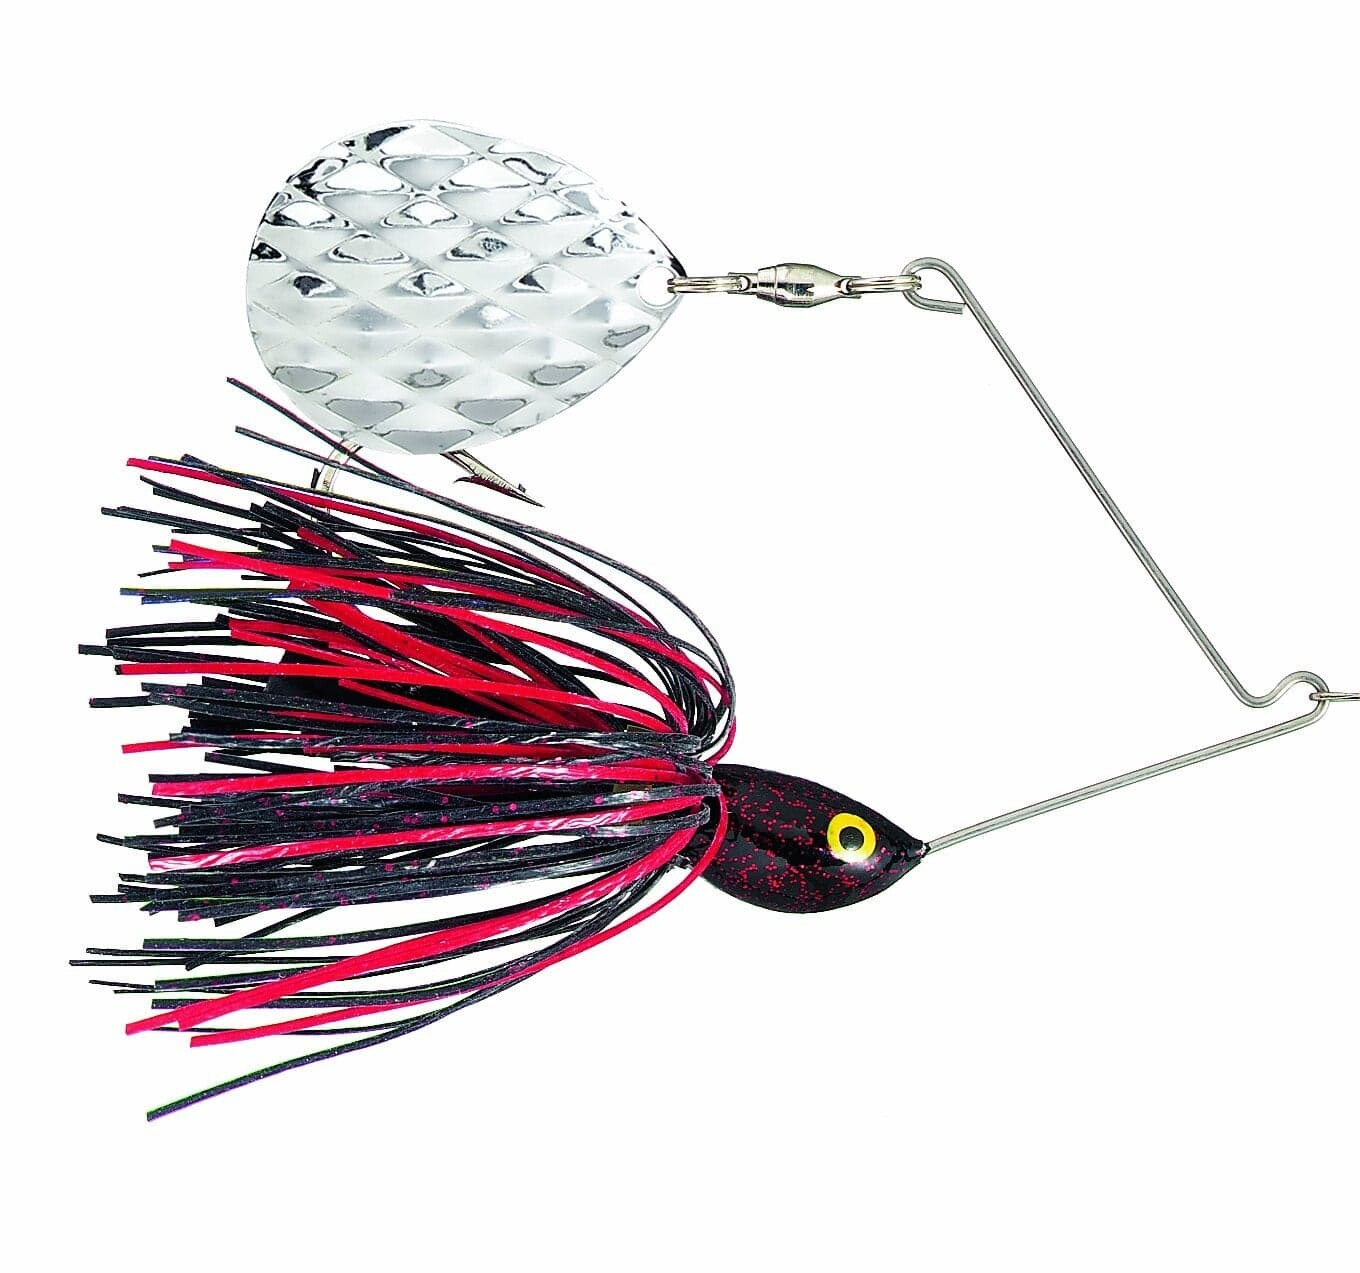 Strike King Ratlin Midnight Special Spinnerbait